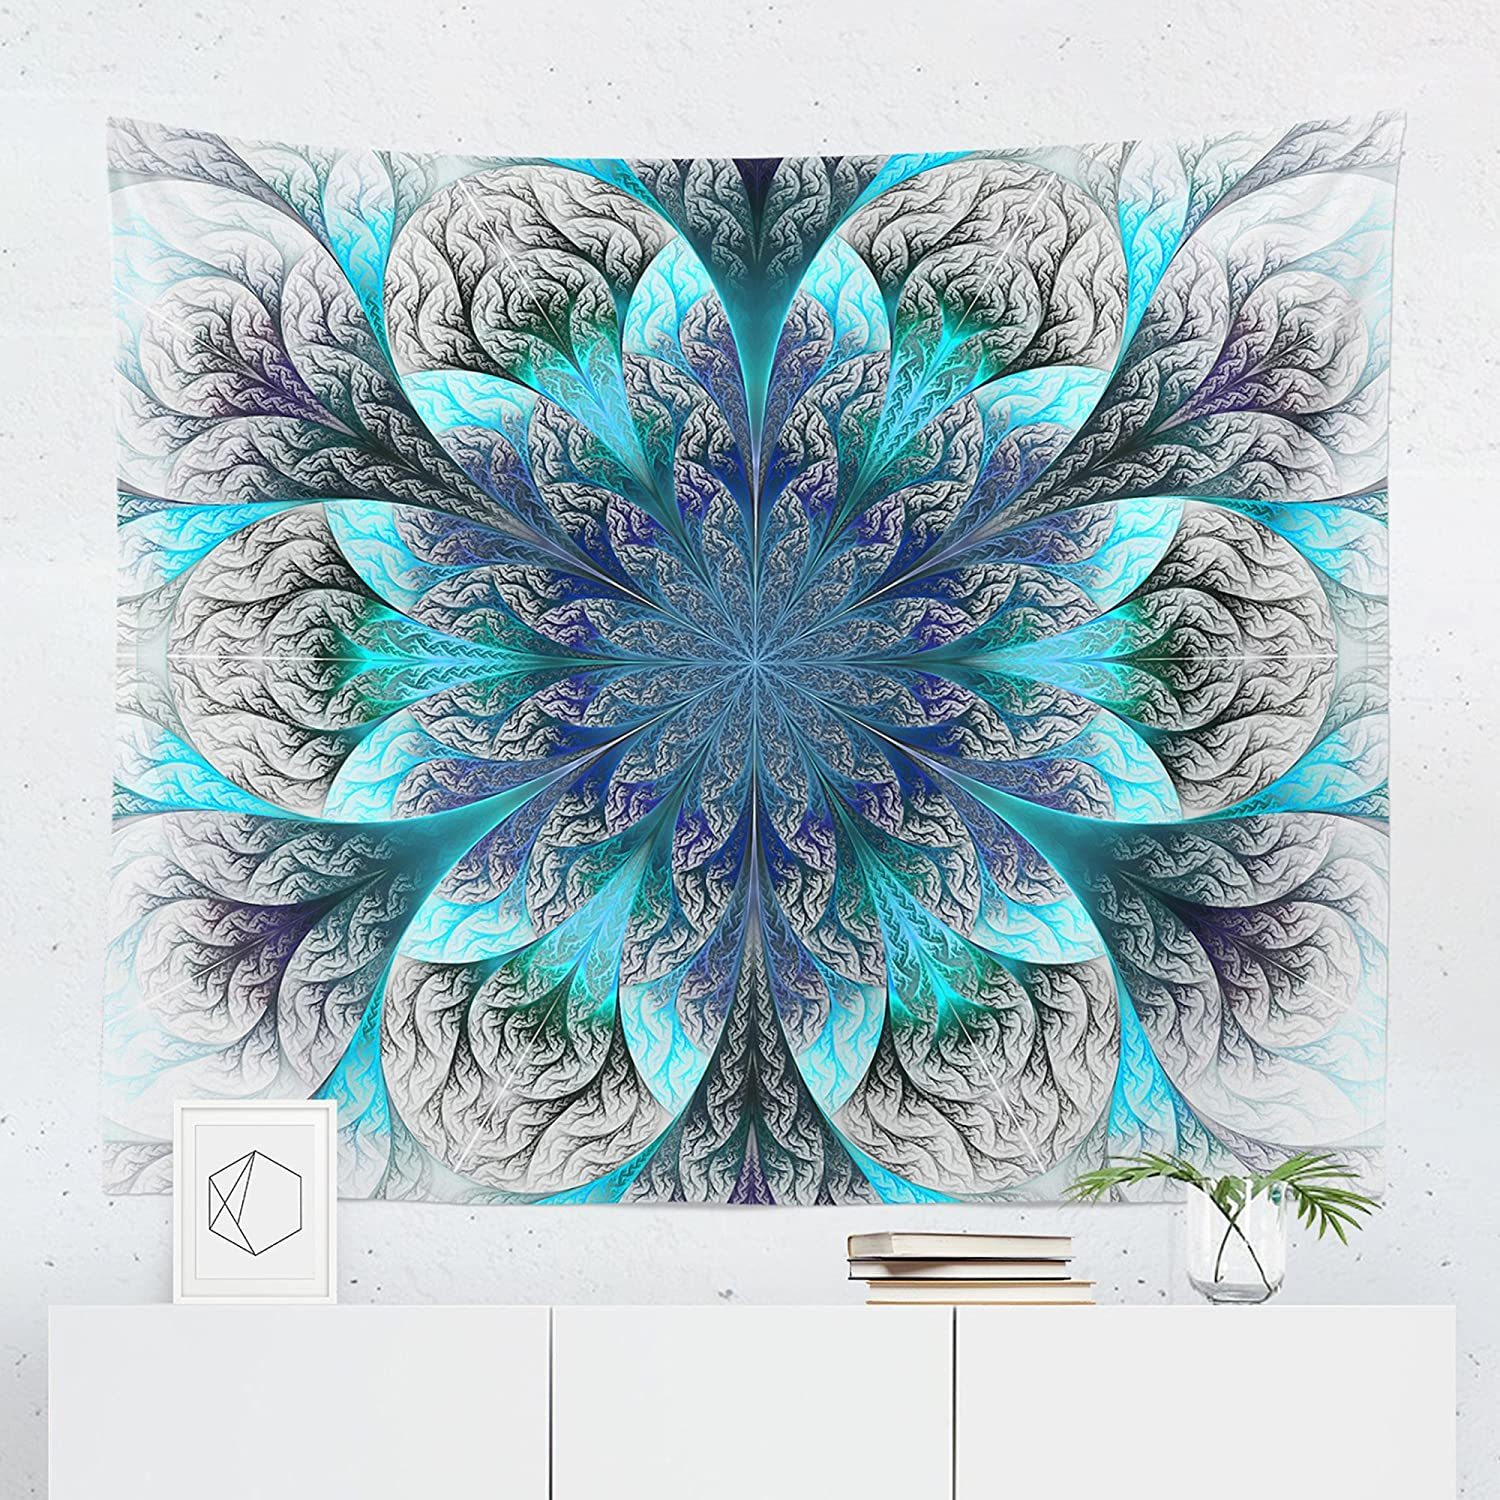 Mandala Tapestry - Bohemian Boho Floral Blue Wall Tapestries Hanging Dé cor Bedroom Dorm College Living Room Home Art Print Decoration Decorative - Printed in the USA - Small Medium Large Sizes